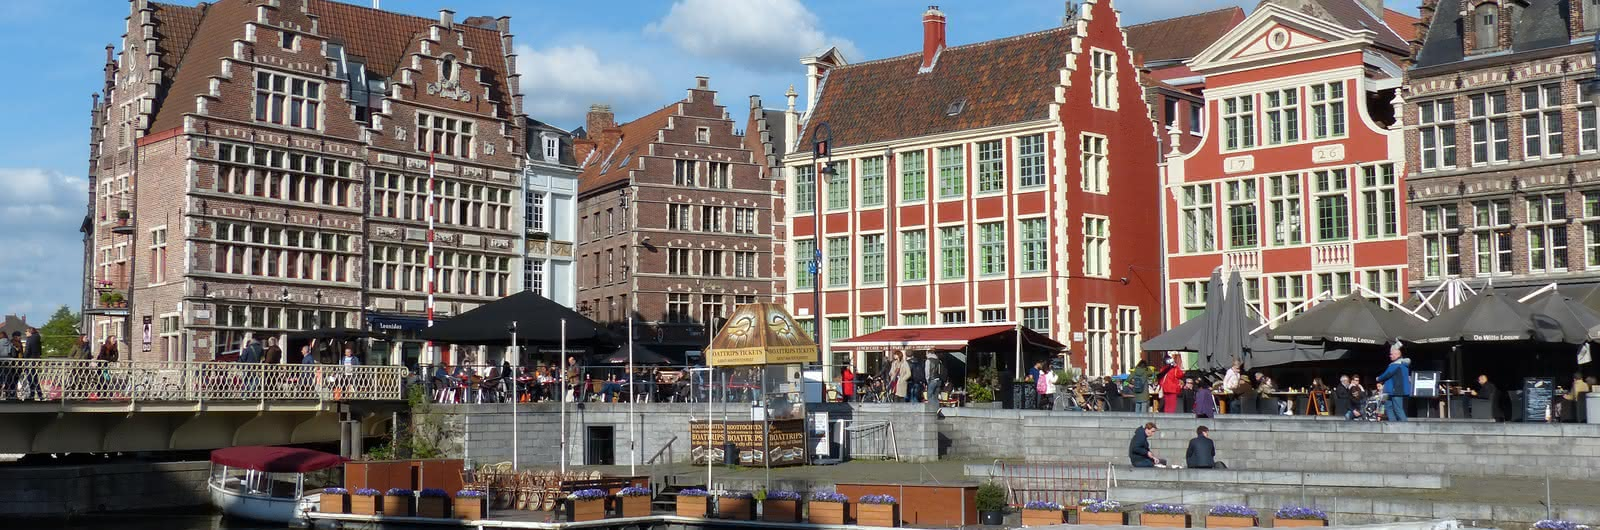 city ghent header